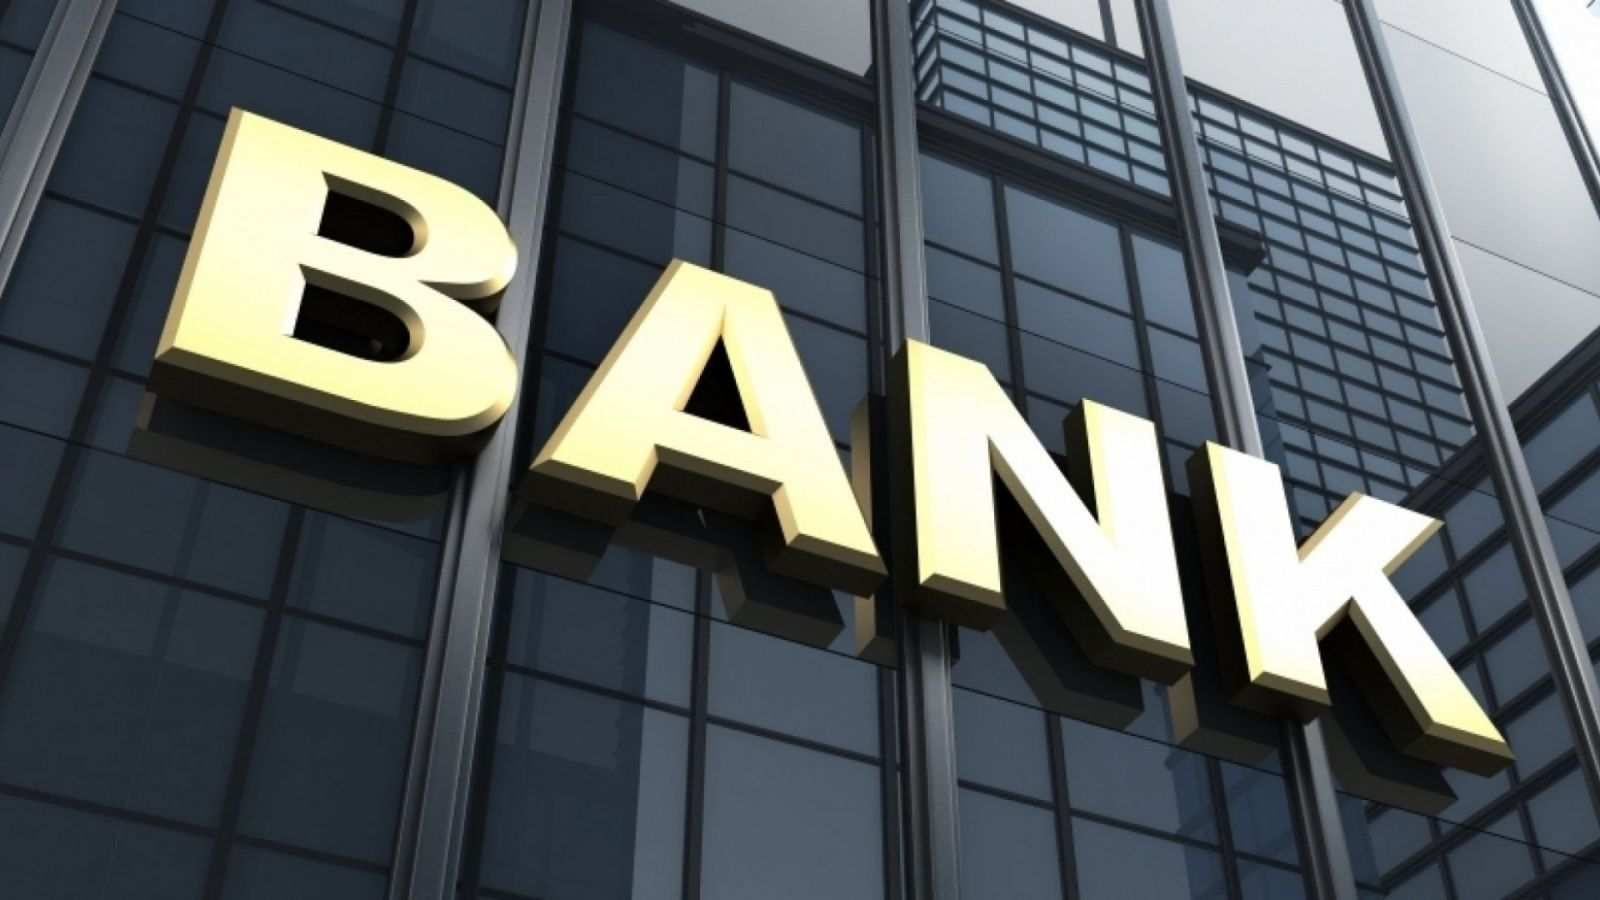 Turkey's Banking Sector Net Profit at US$1.9B in Jan-March